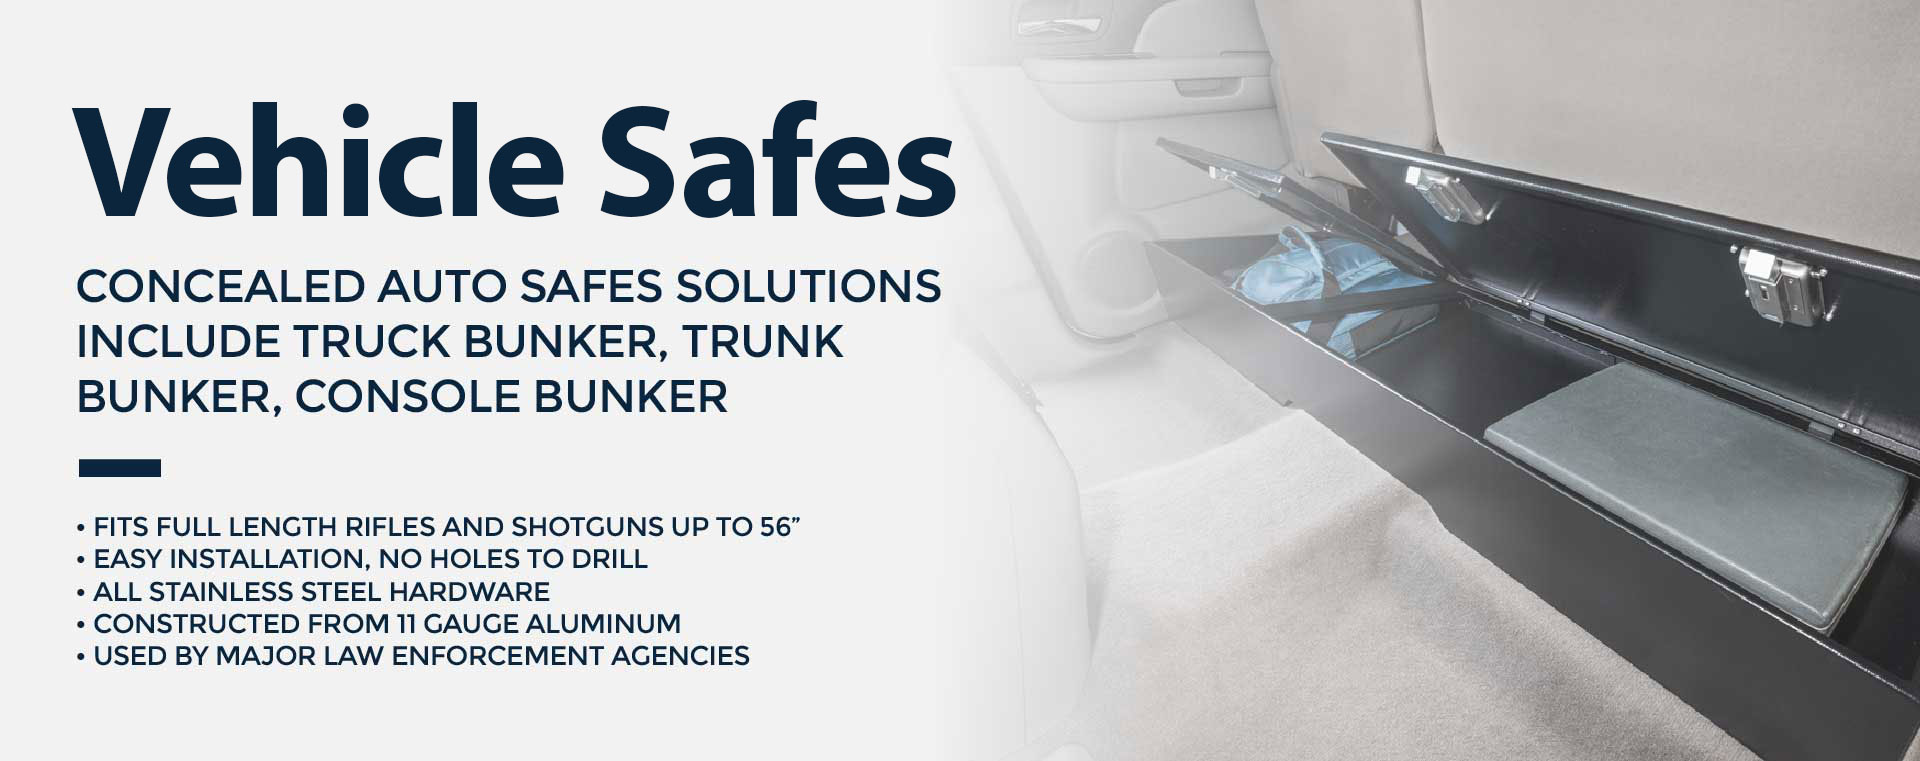 Vehicle-Safes-Banner-Safety-Security